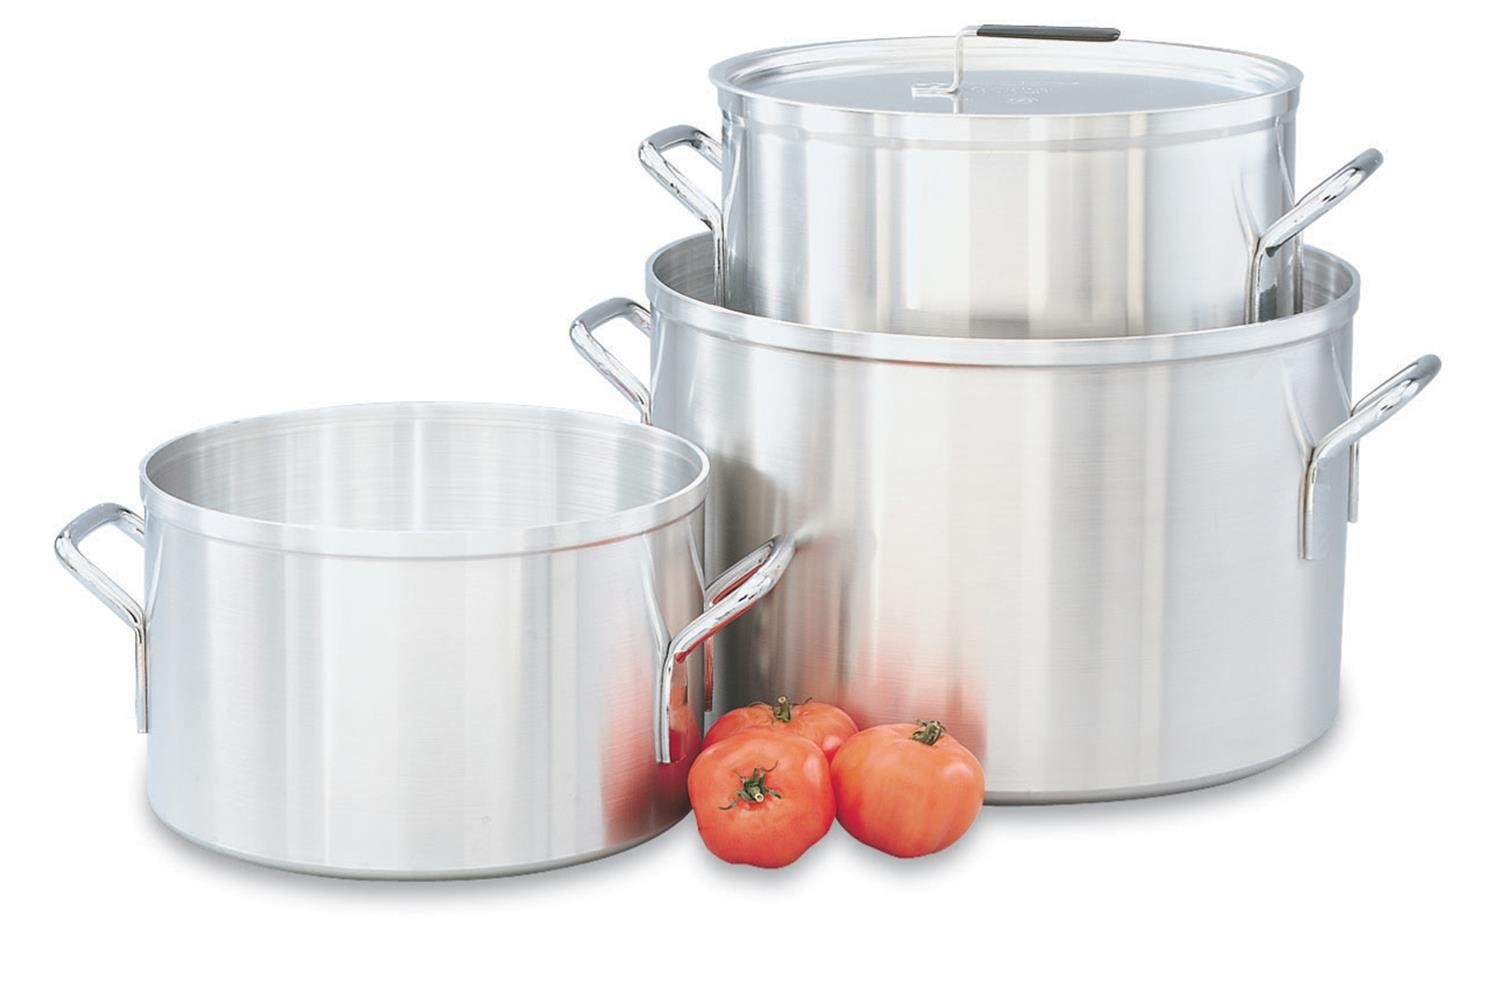 Vollrath 67414 Wear-Ever Classic Aluminum Sauce Pot 14 Qt.